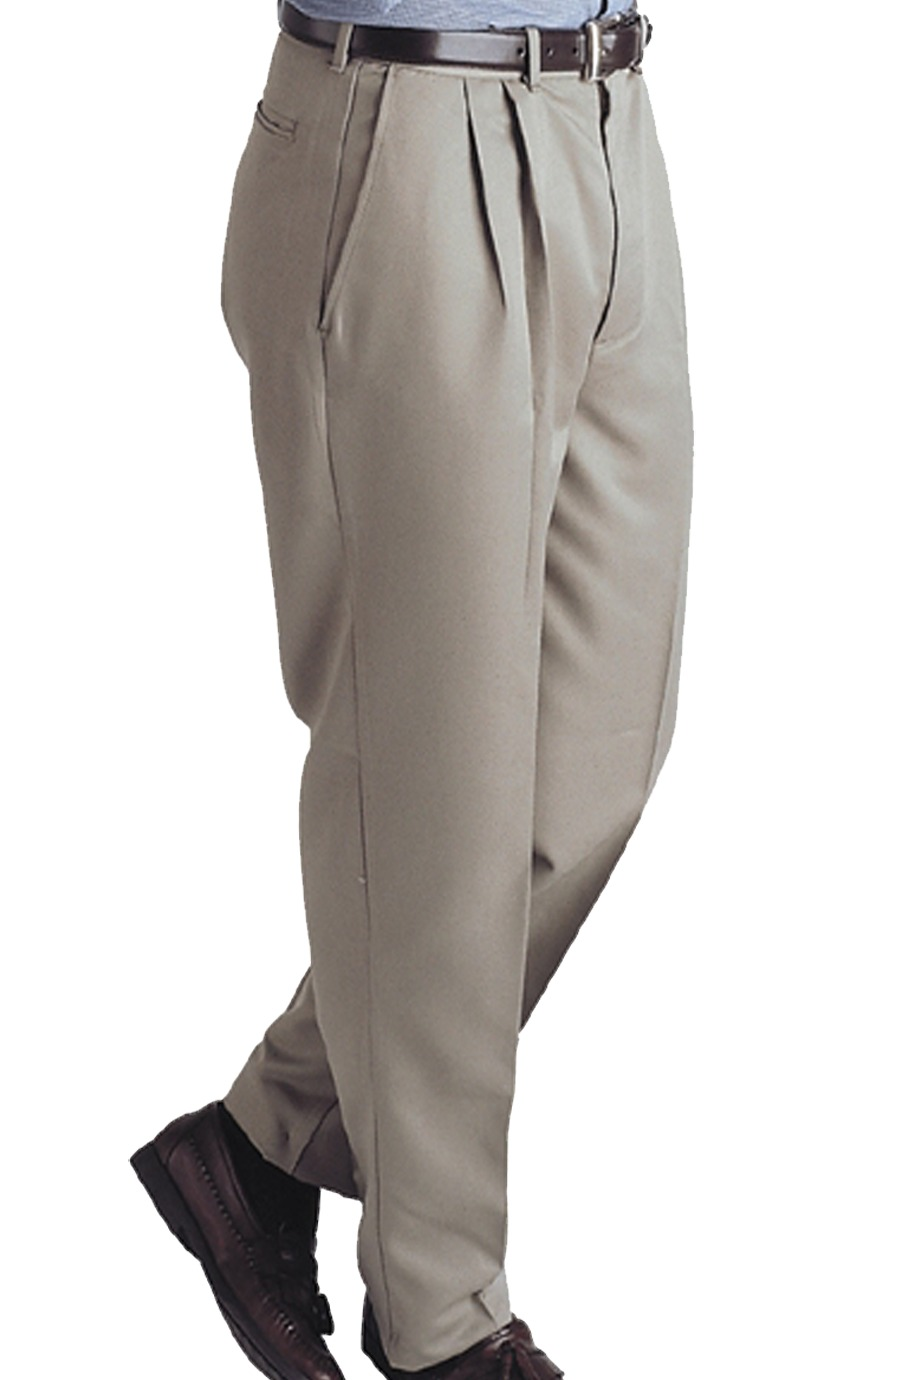 Edwards Garment 2674 - Men's Microfiber Pleated Pant